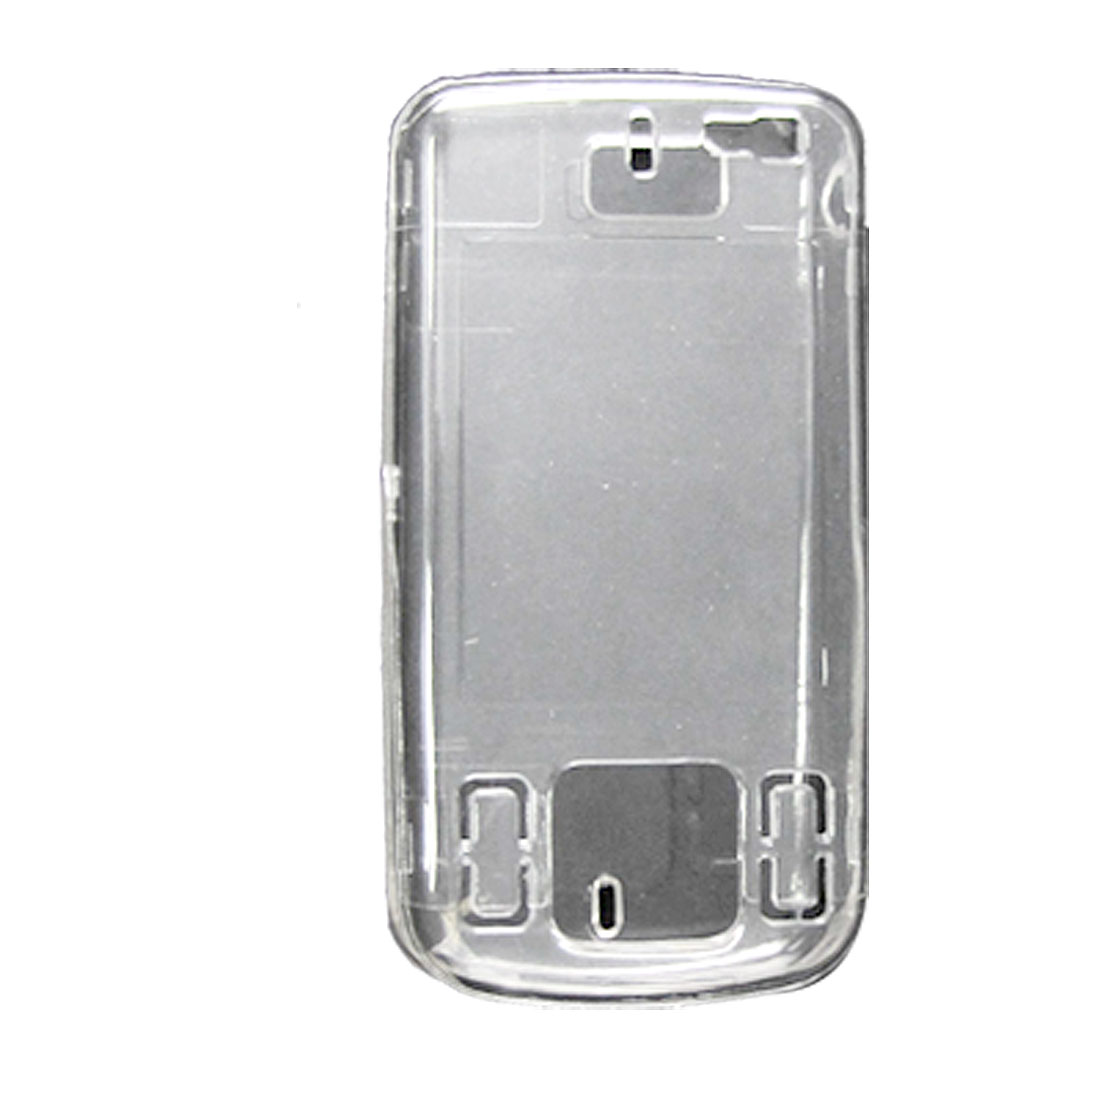 Mobile Phone Hard Plastic Crystal Case for Nokia 6600S